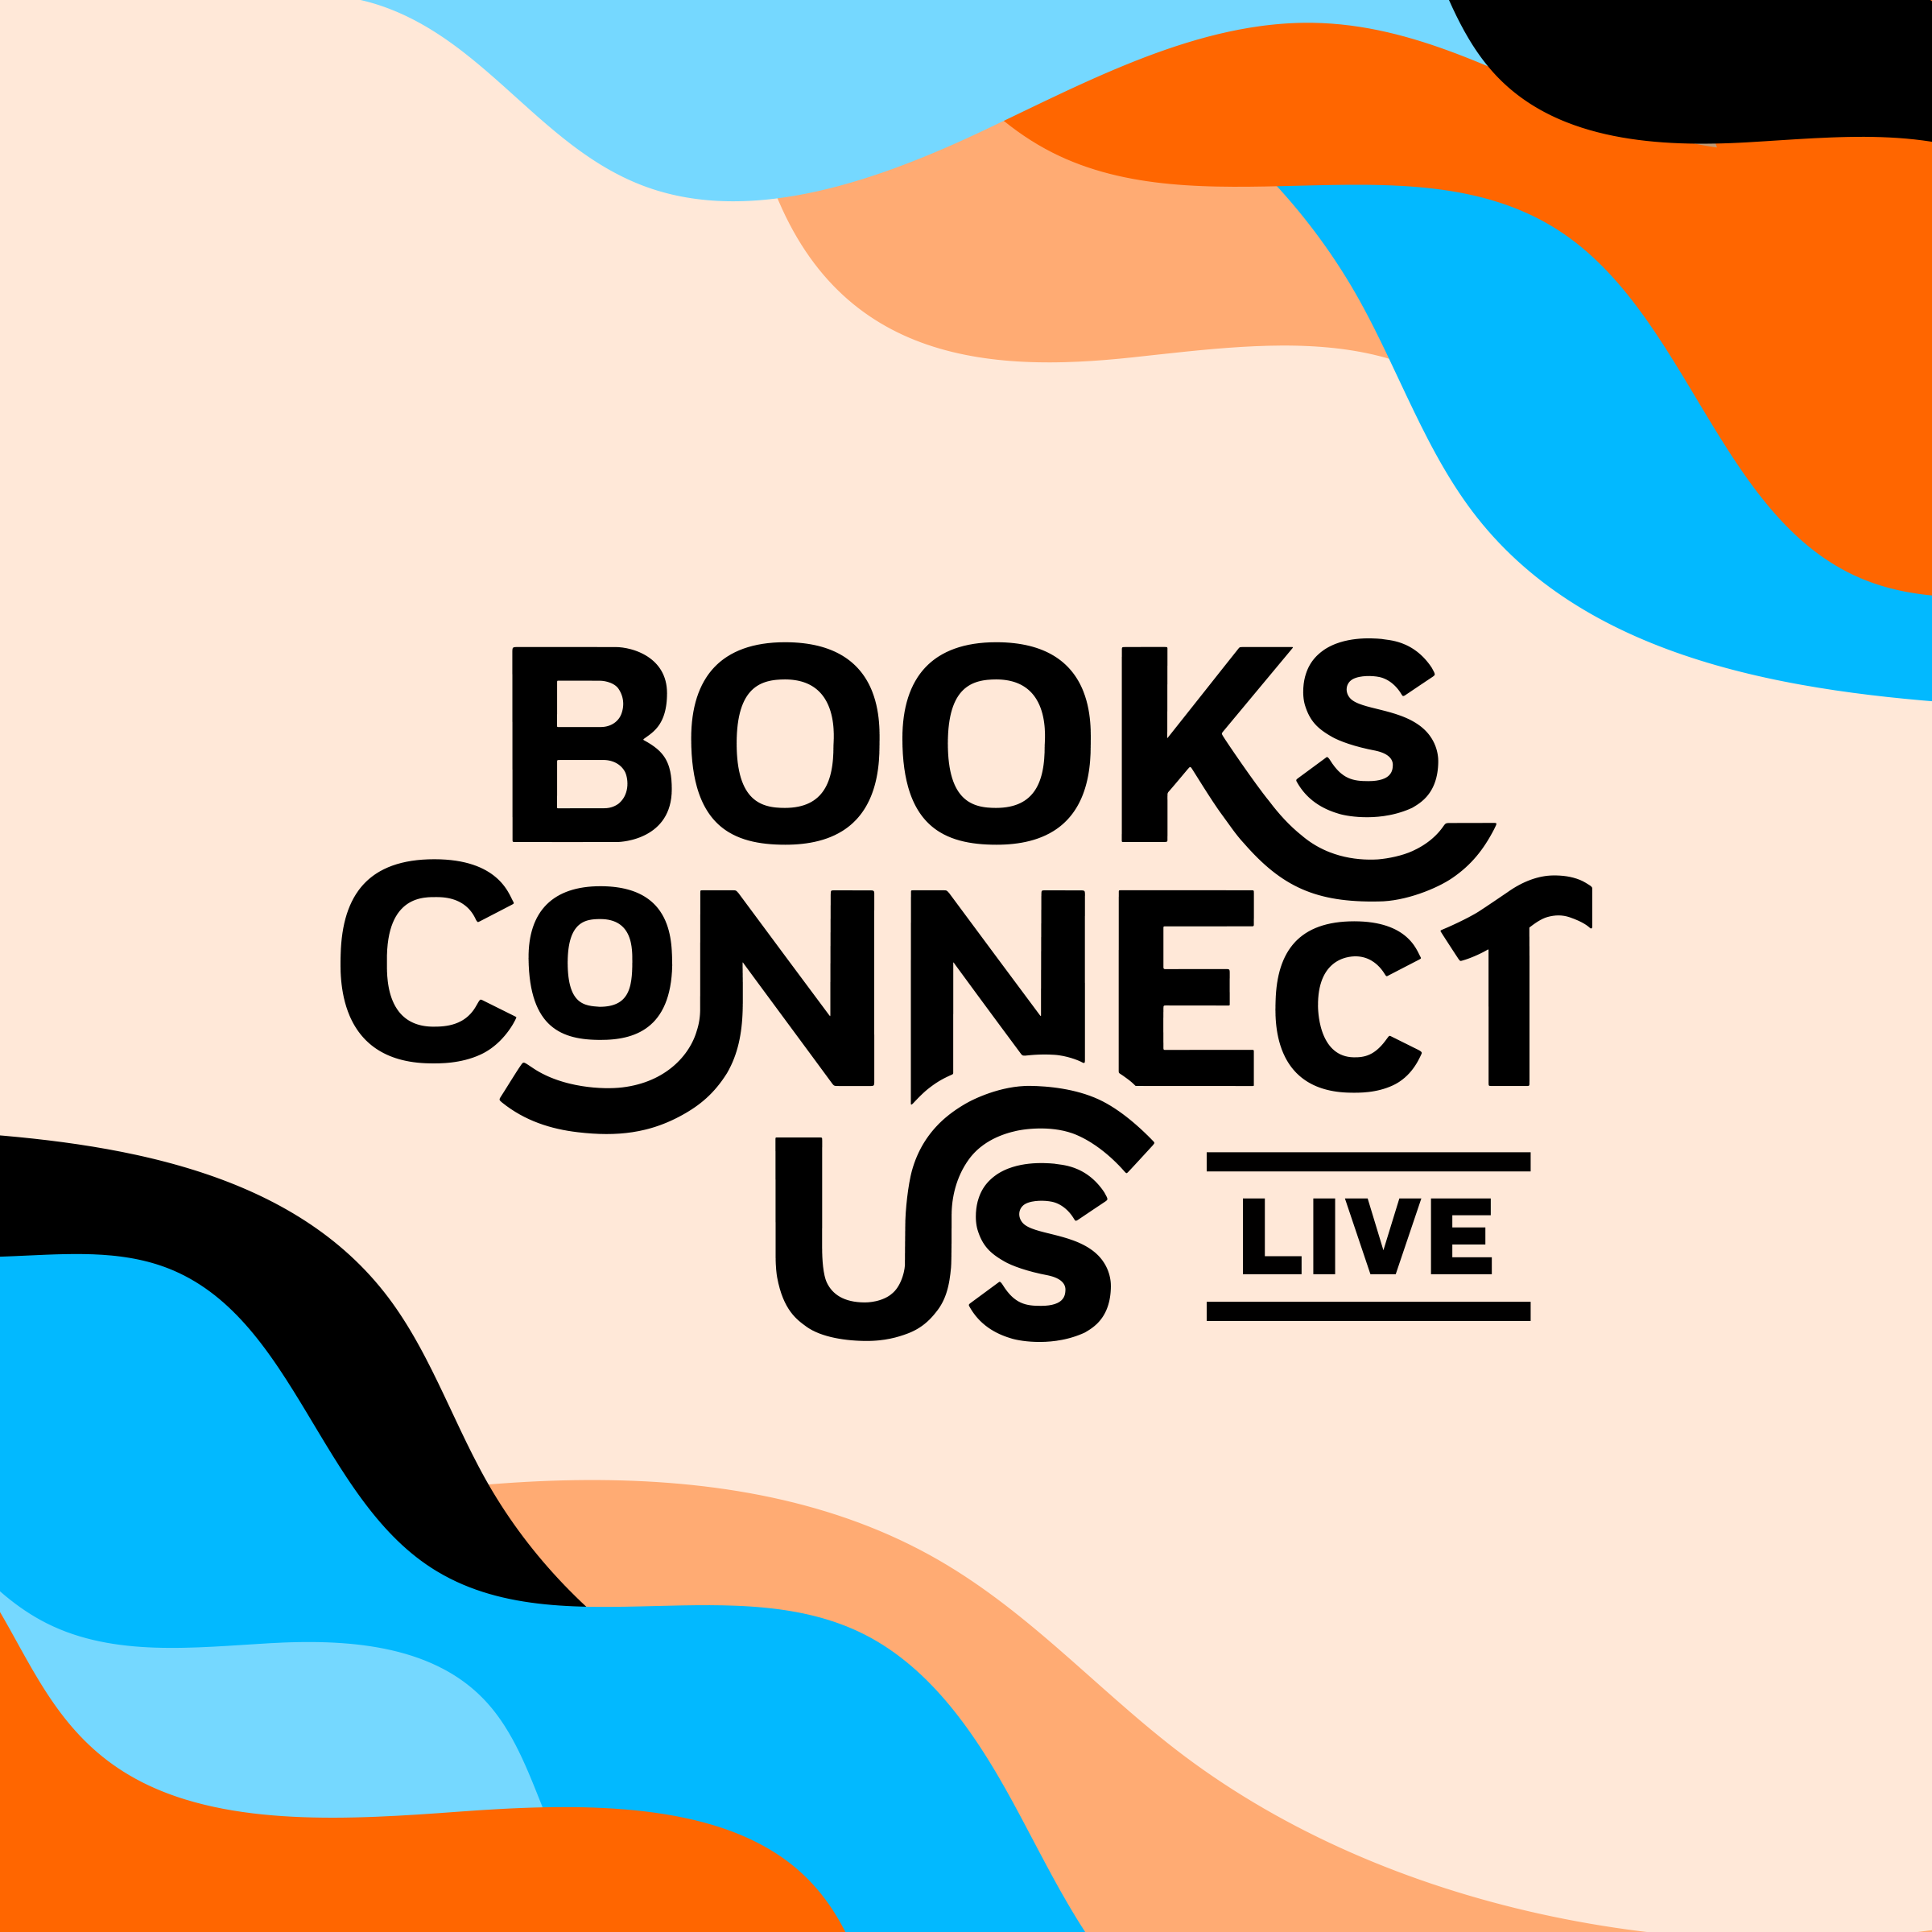 Books Connect Us Live 5/18-5/31